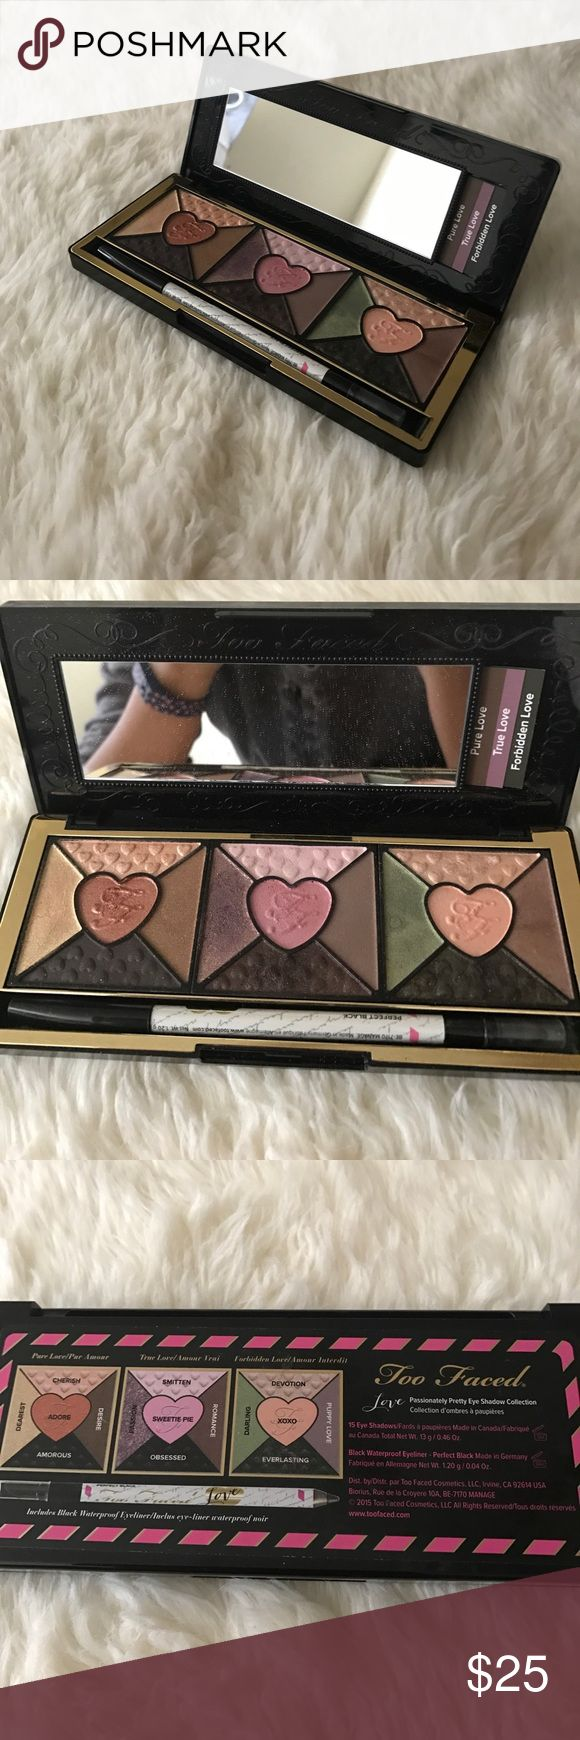 Best 25+ Too faced eyeshadow ideas on Pinterest | Too faced ...